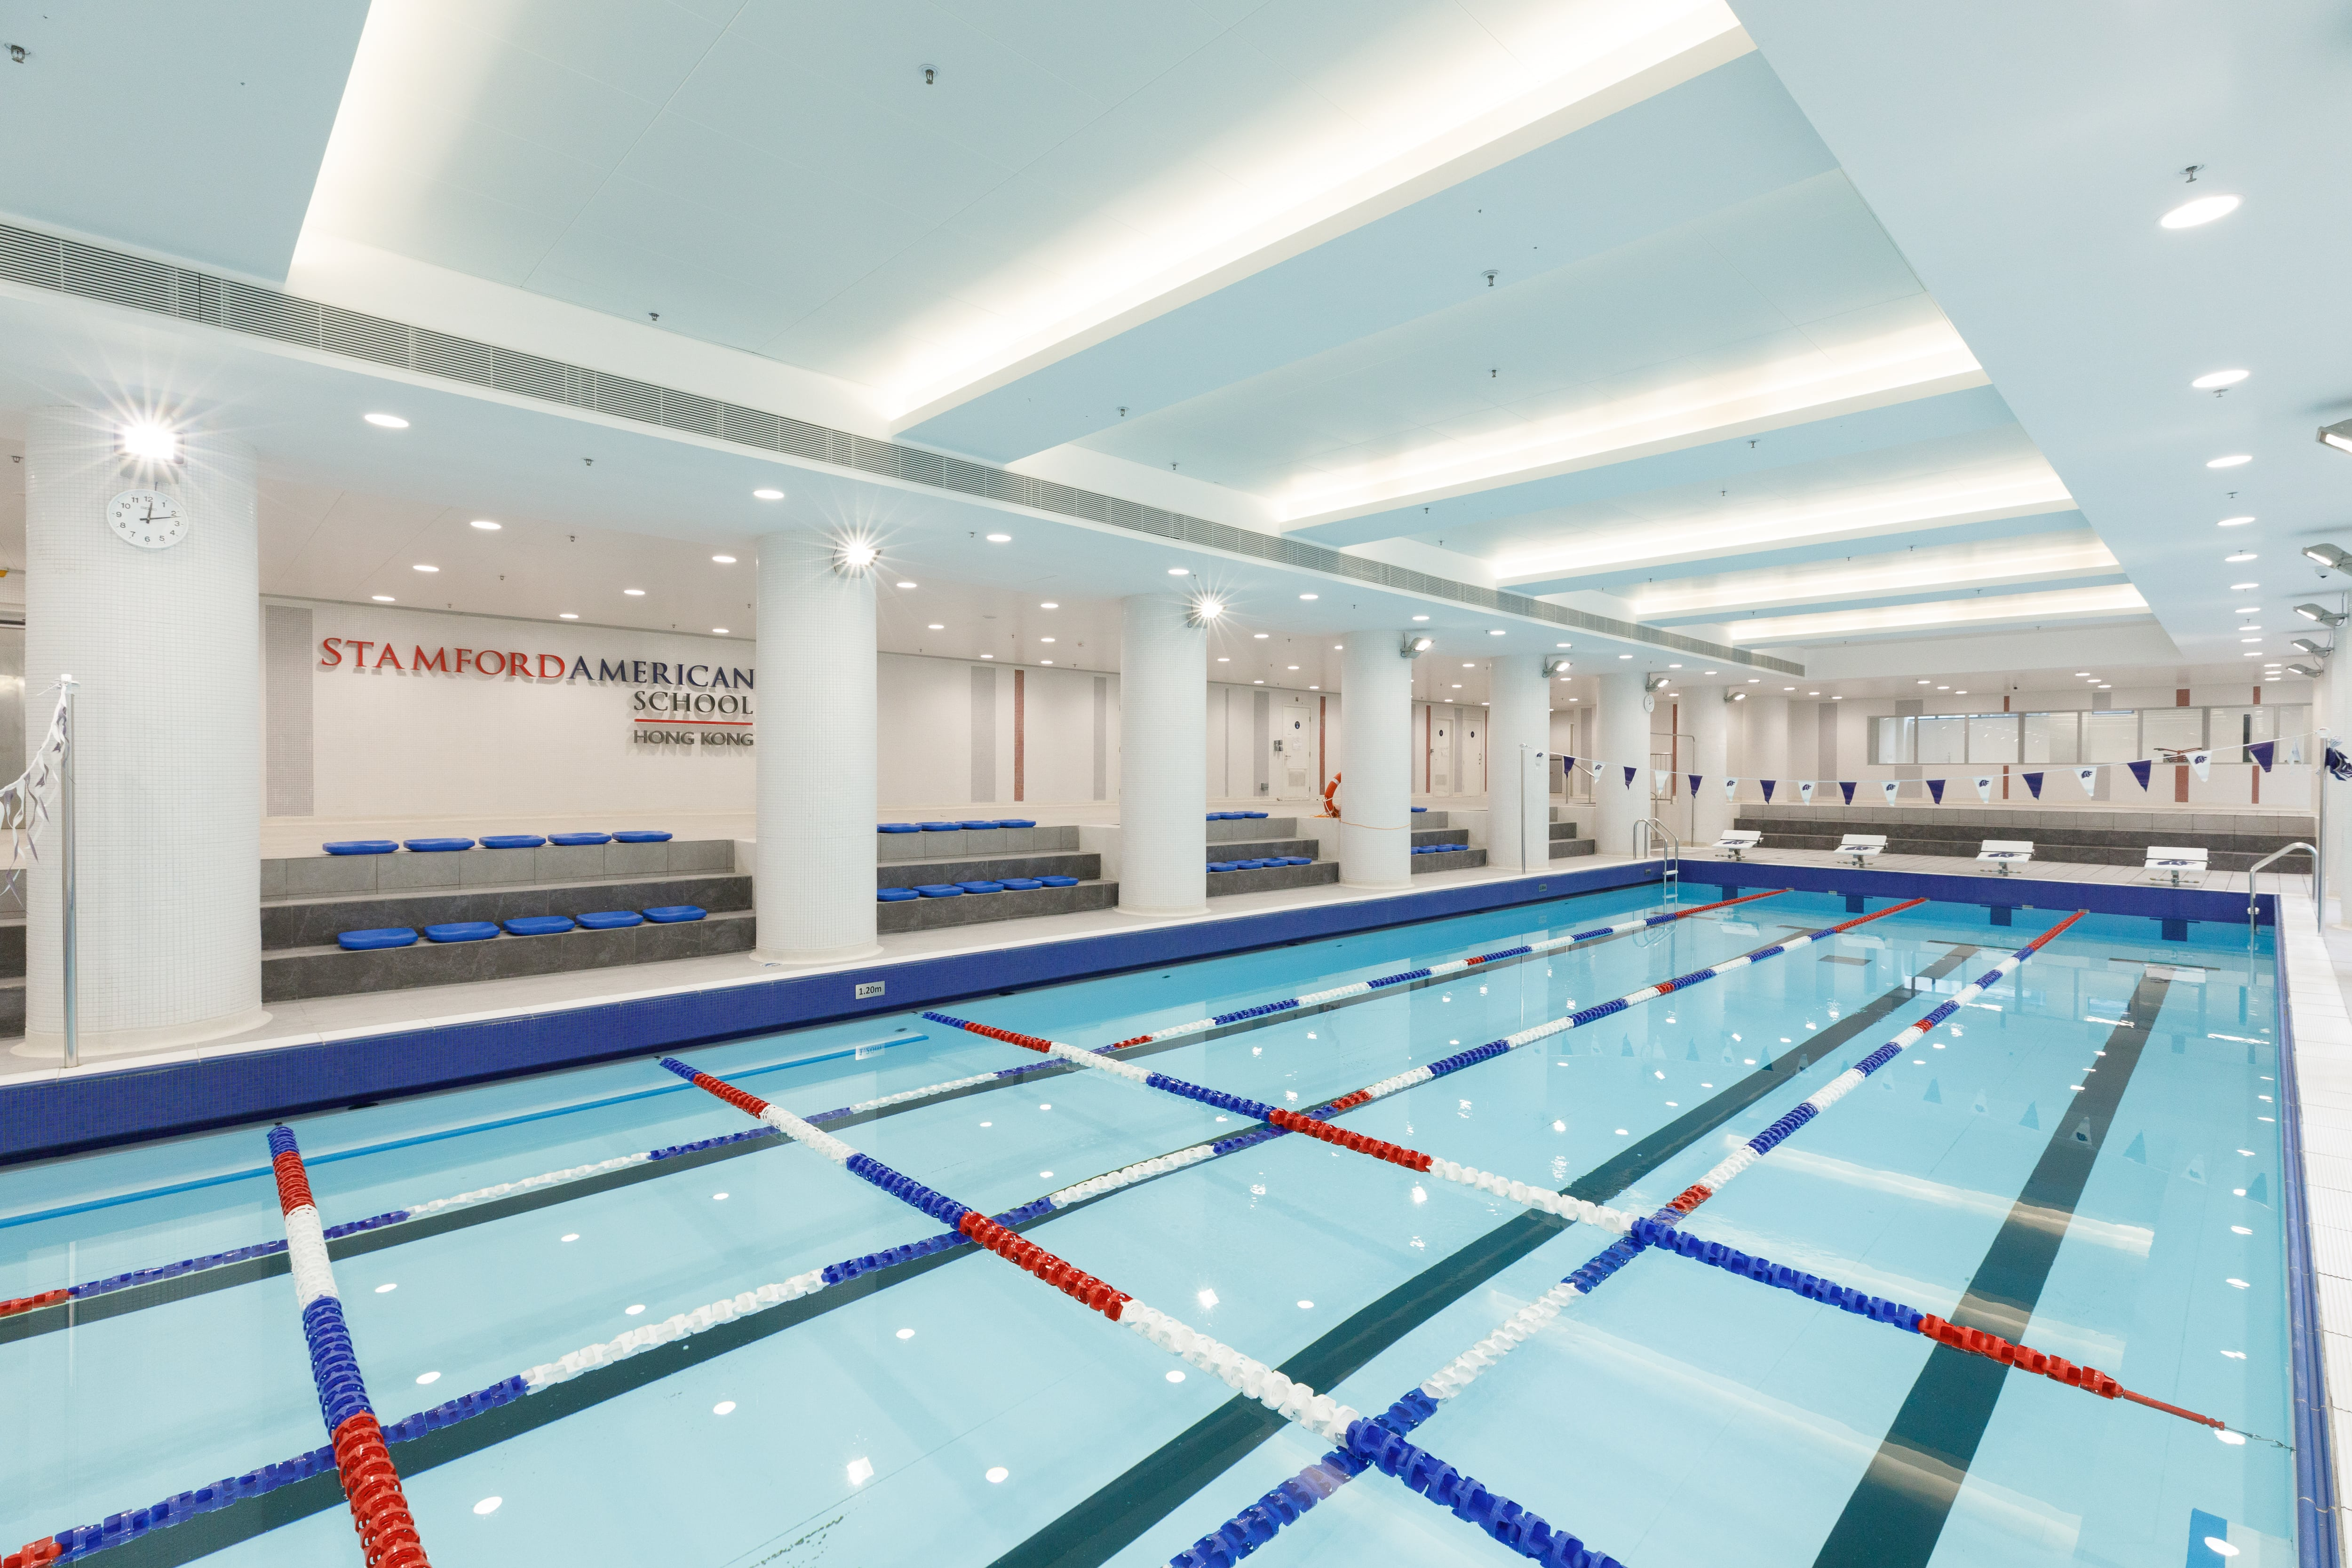 STAMFORD AMERICAN SCHOOL Swimming Pool